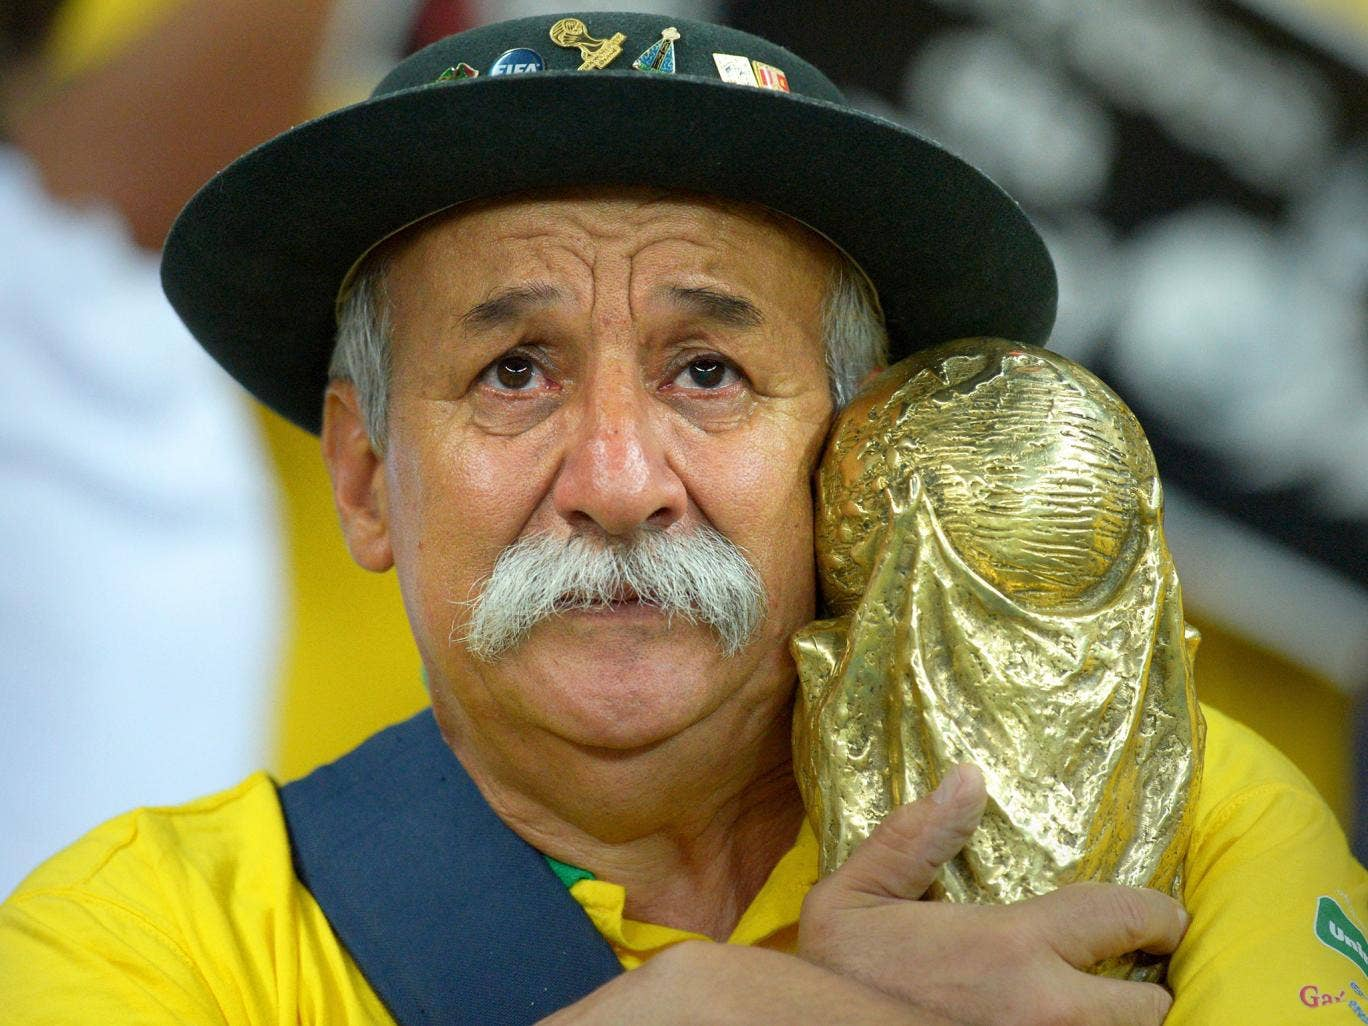 A Brazilian fan shows his dejection after the FIFA World Cup 2014 semi final match between Brazil and Germany at the Estadio Mineirao in Belo Horizonte, Brazil